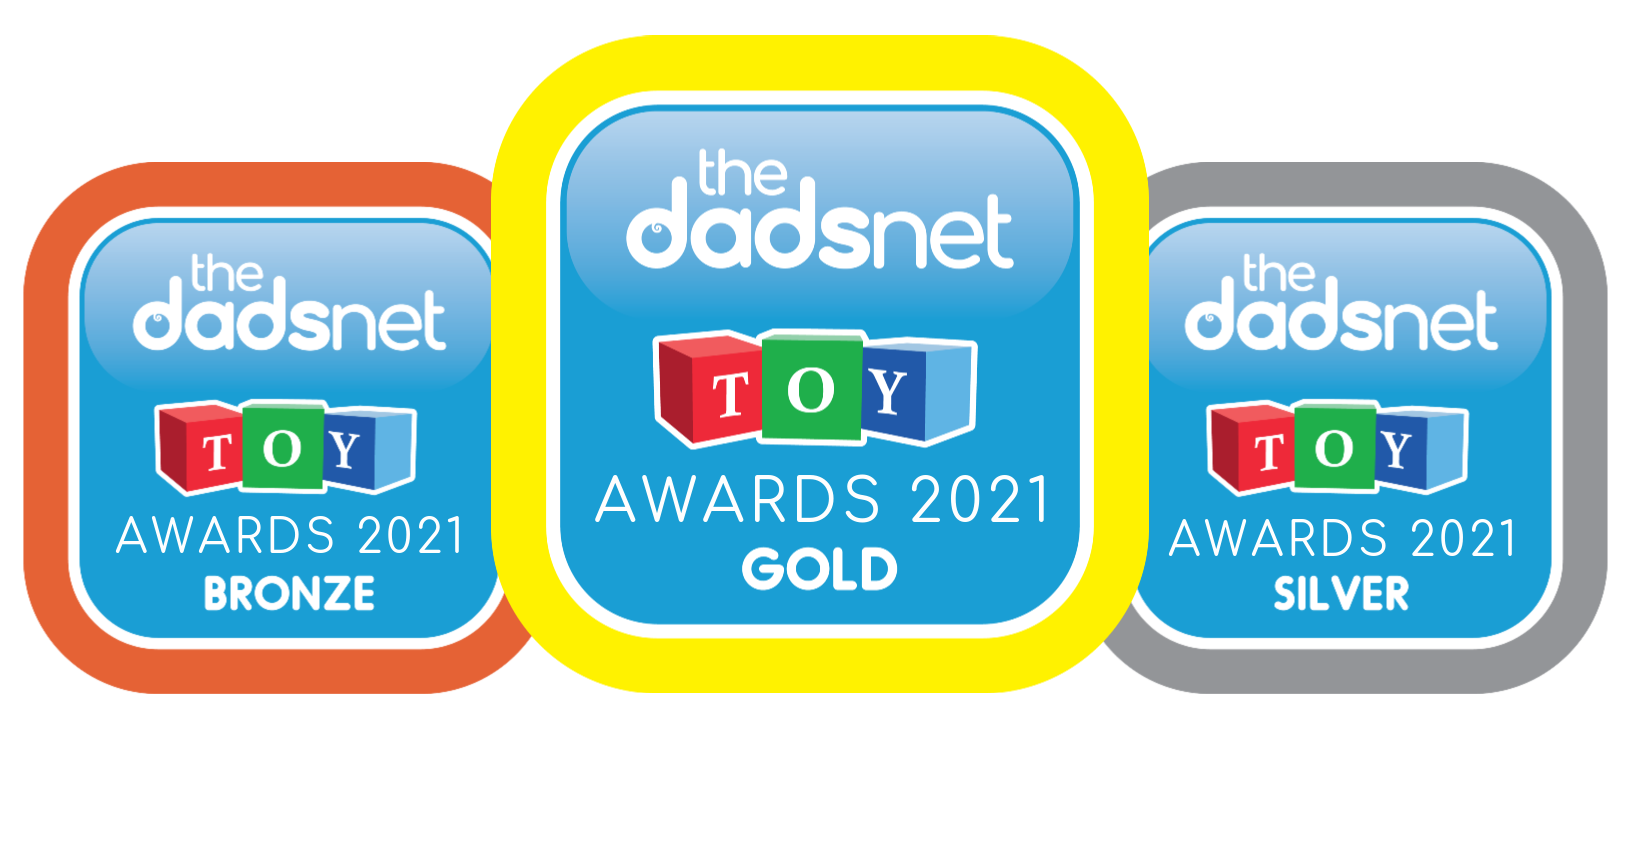 Dadsnet Toy Awards 2021, Toy Awards 2020 Badges 2%, %